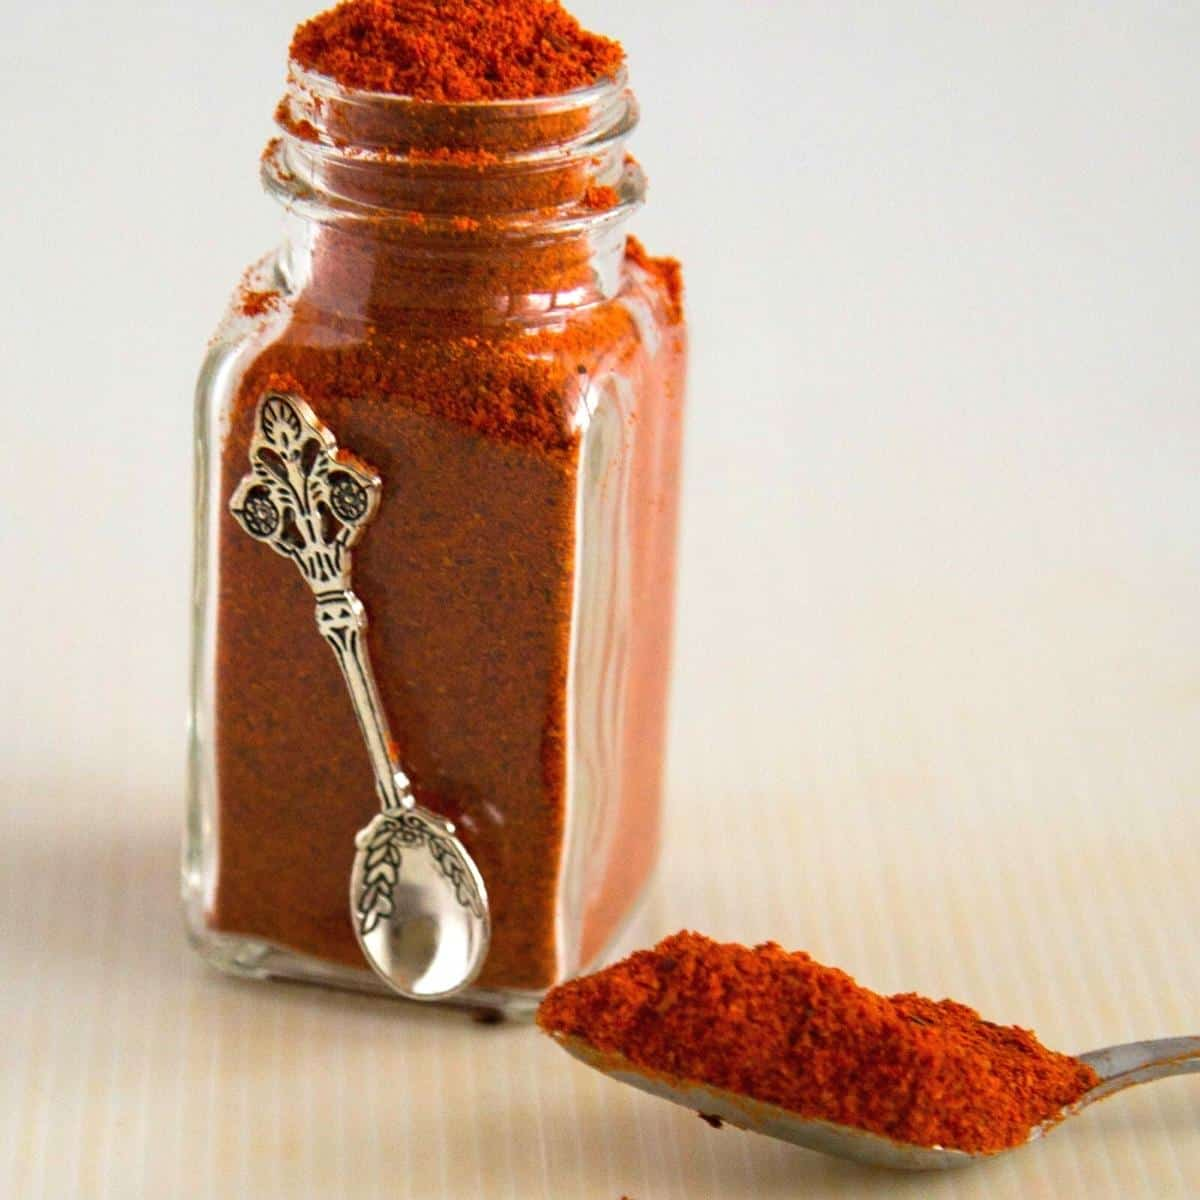 Shawarma spice in a jar and spoon.